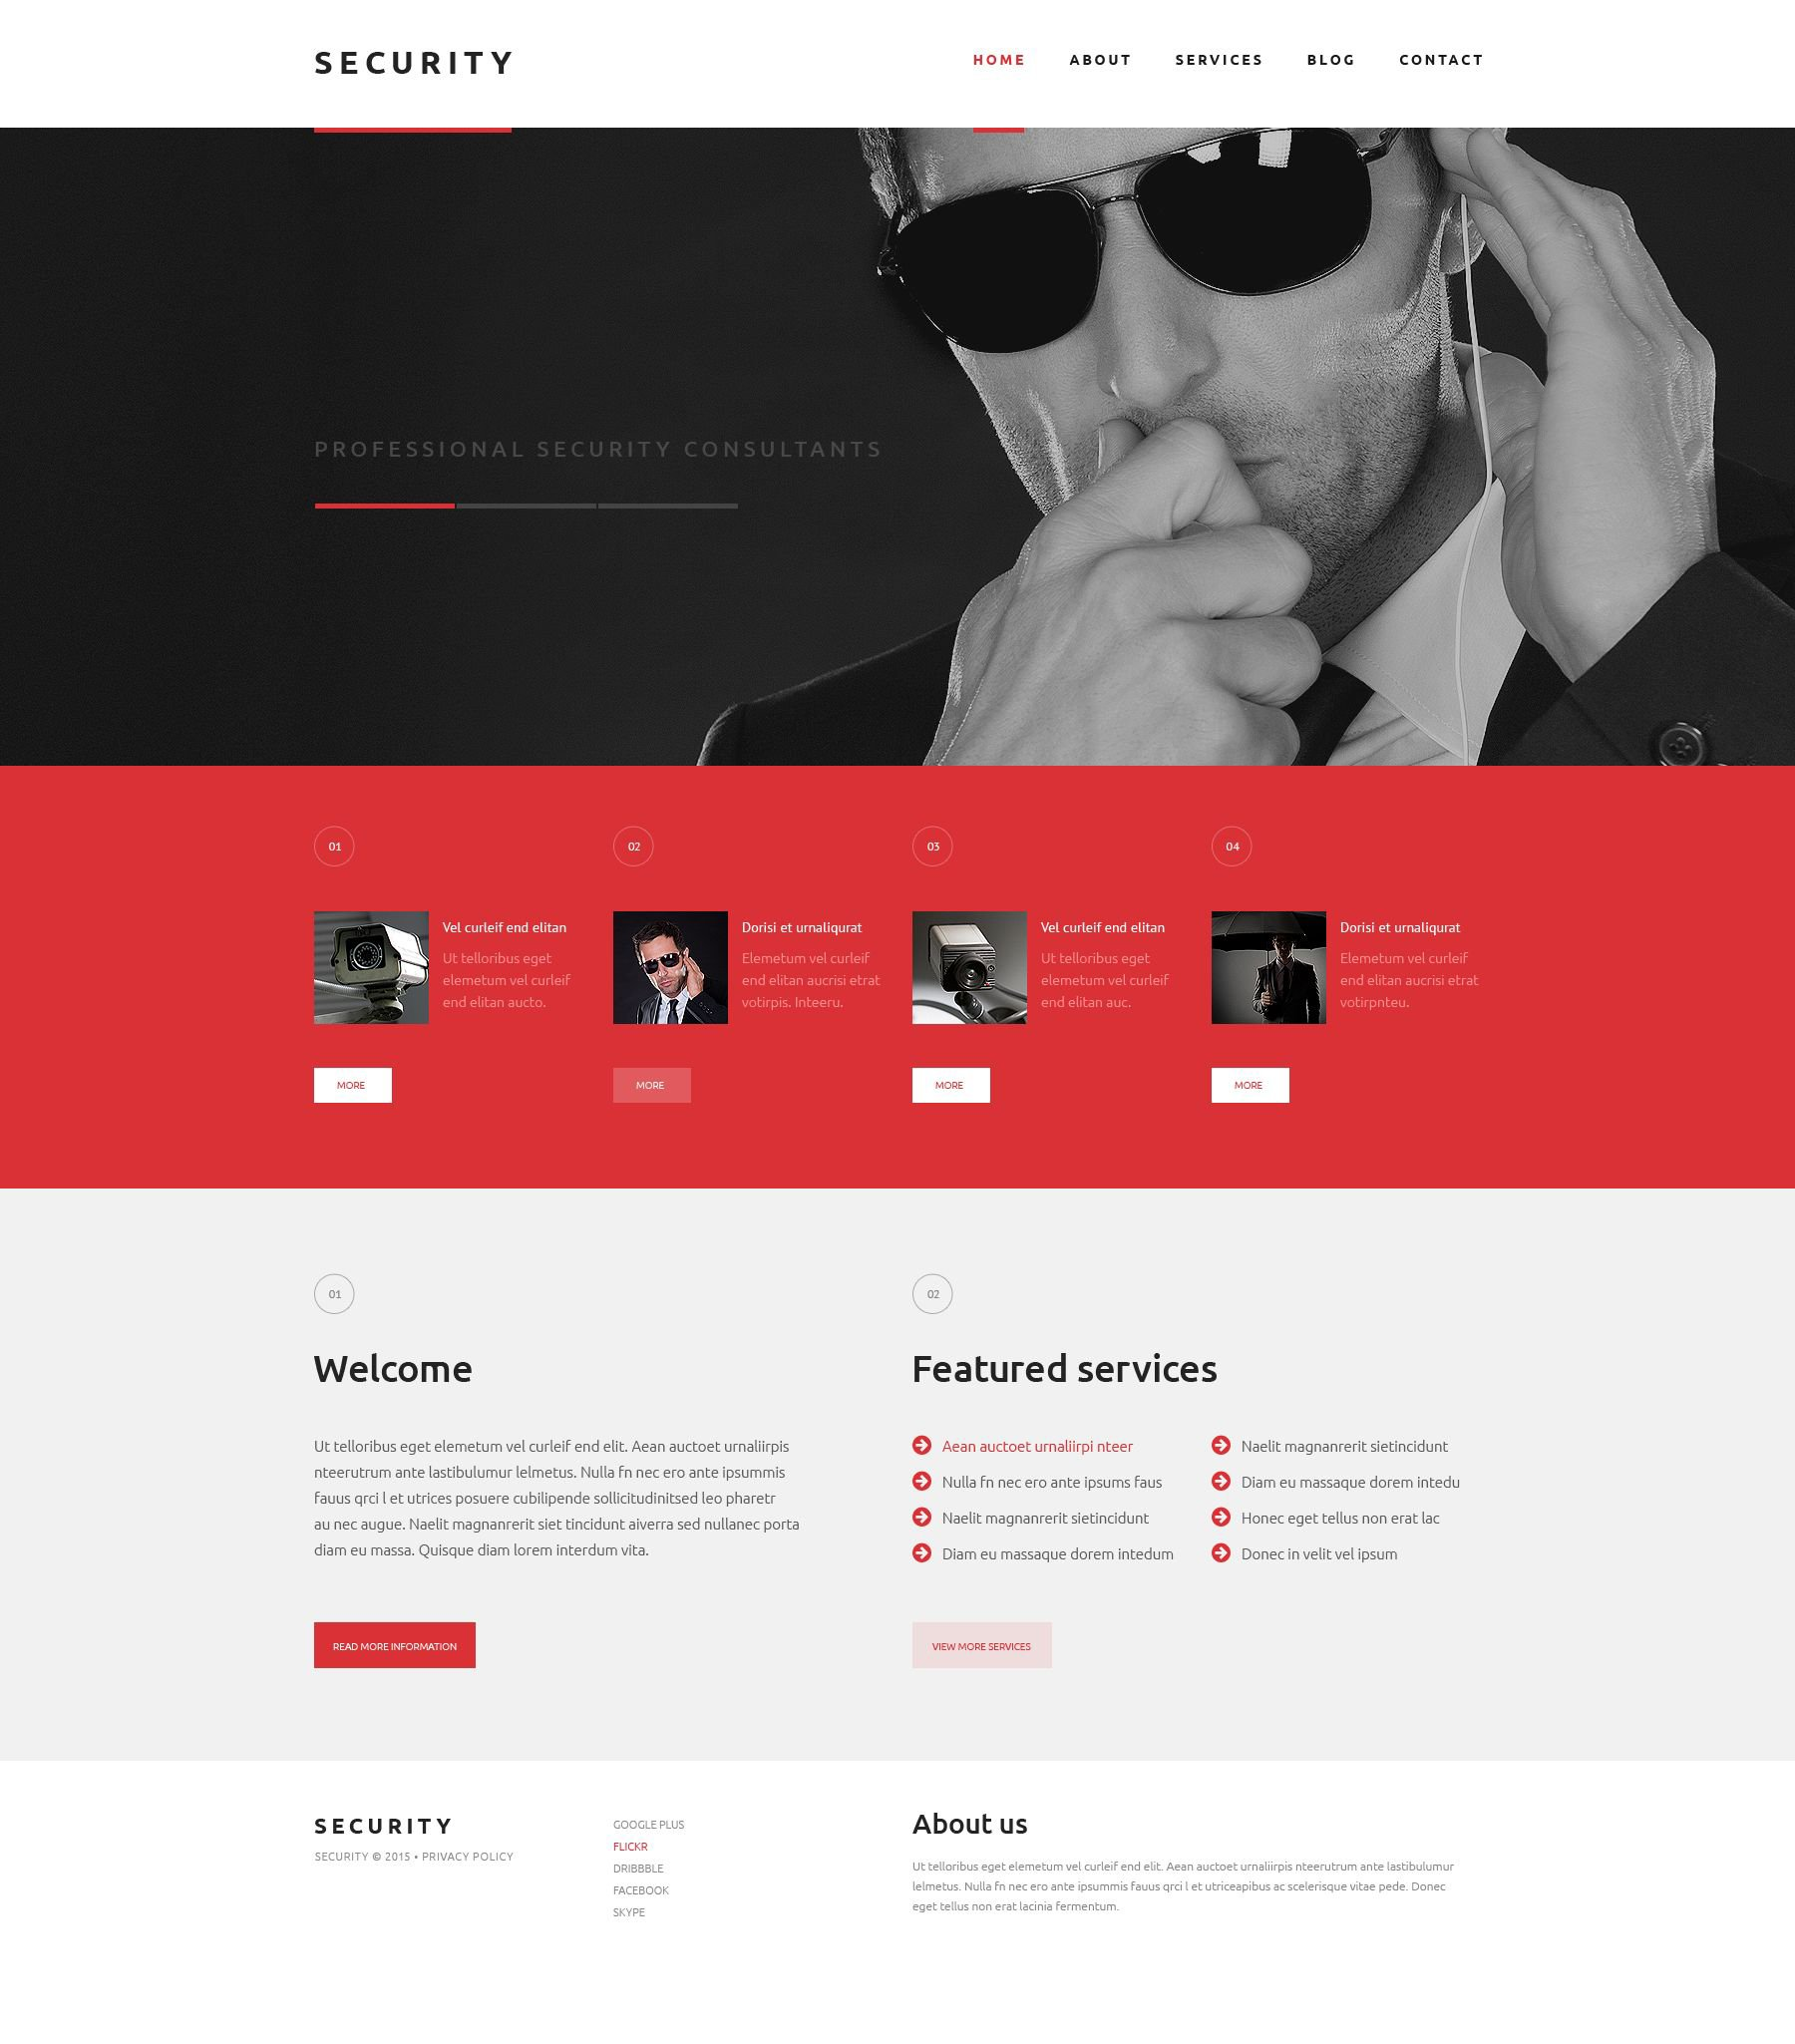 The Security Systems WordPress Design 53002, one of the best WordPress themes of its kind (business, most popular), also known as security systems WordPress template, pro company WordPress template, guard WordPress template, camera WordPress template, information WordPress template, safety WordPress template, alarm systems WordPress template, door WordPress template, control WordPress template, protection WordPress template, home WordPress template, health WordPress template, mobile WordPress template, monitoring WordPress template, personal car WordPress template, signaling WordPress template, offer WordPress template, special product solution WordPress template, staff WordPress template, support WordPress template, service WordPress template, proposition WordPress template, resource WordPress template, client WordPress template, testimonials WordPress template, enterprise WordPress template, specia and related with security systems, pro company, guard, camera, information, safety, alarm systems, door, control, protection, home, health, mobile, monitoring, personal car, signaling, offer, special product solution, staff, support, service, proposition, resource, client, testimonials, enterprise, specia, etc.